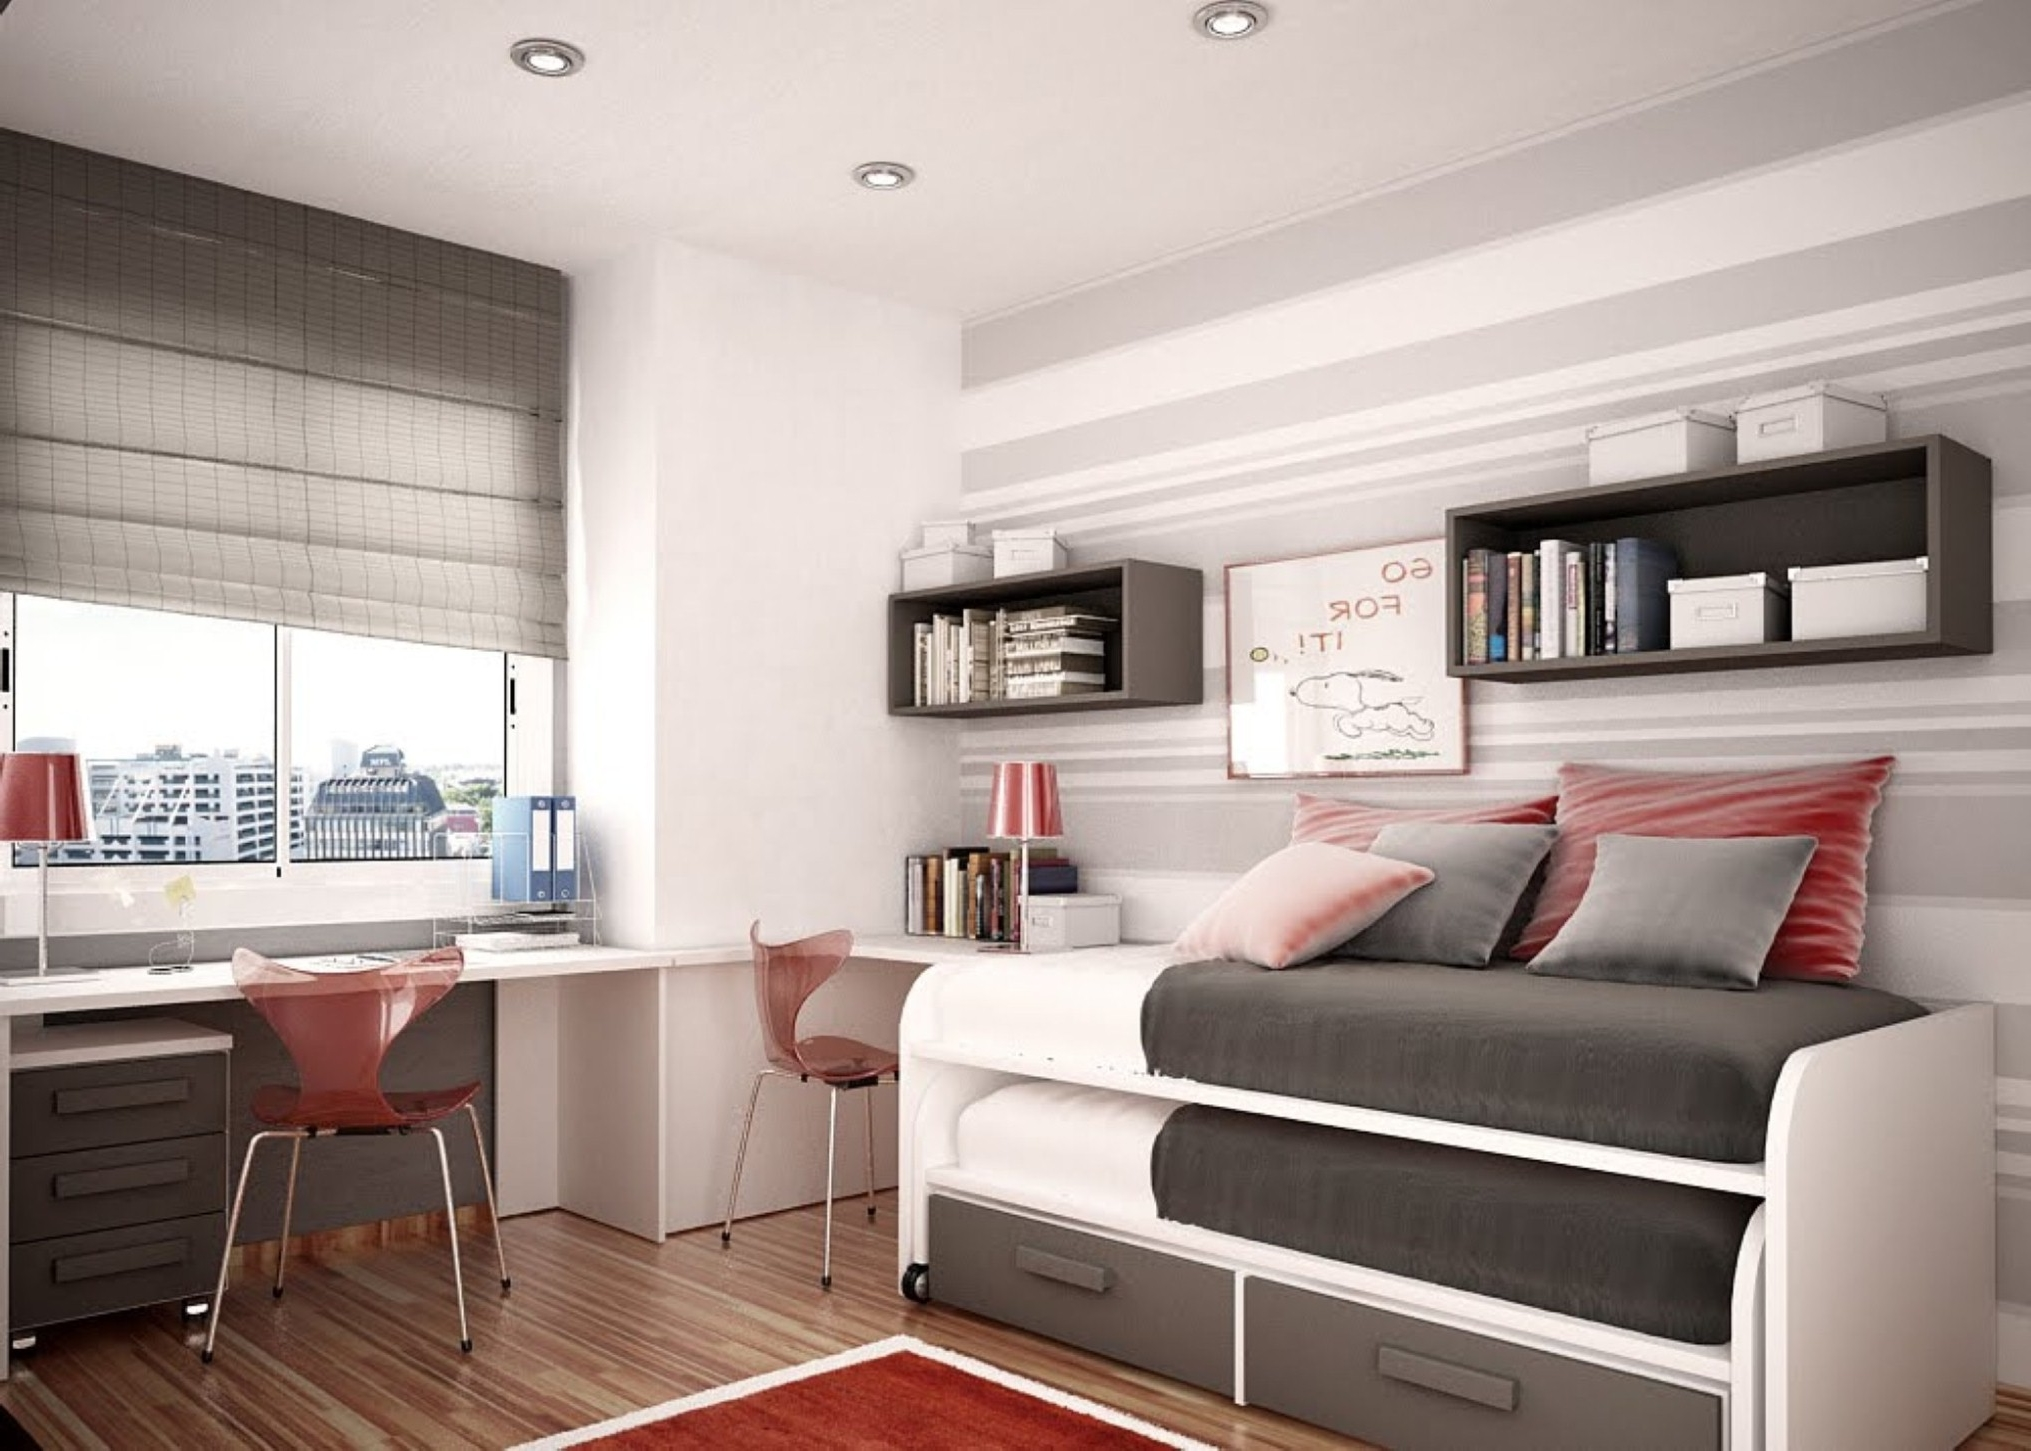 Neat Inspirational Space Saving Pull Bunk Bed Design Feat Red Clear Desk Chair And Chic Gray Bedroom Wall Paint (View 11 of 21)